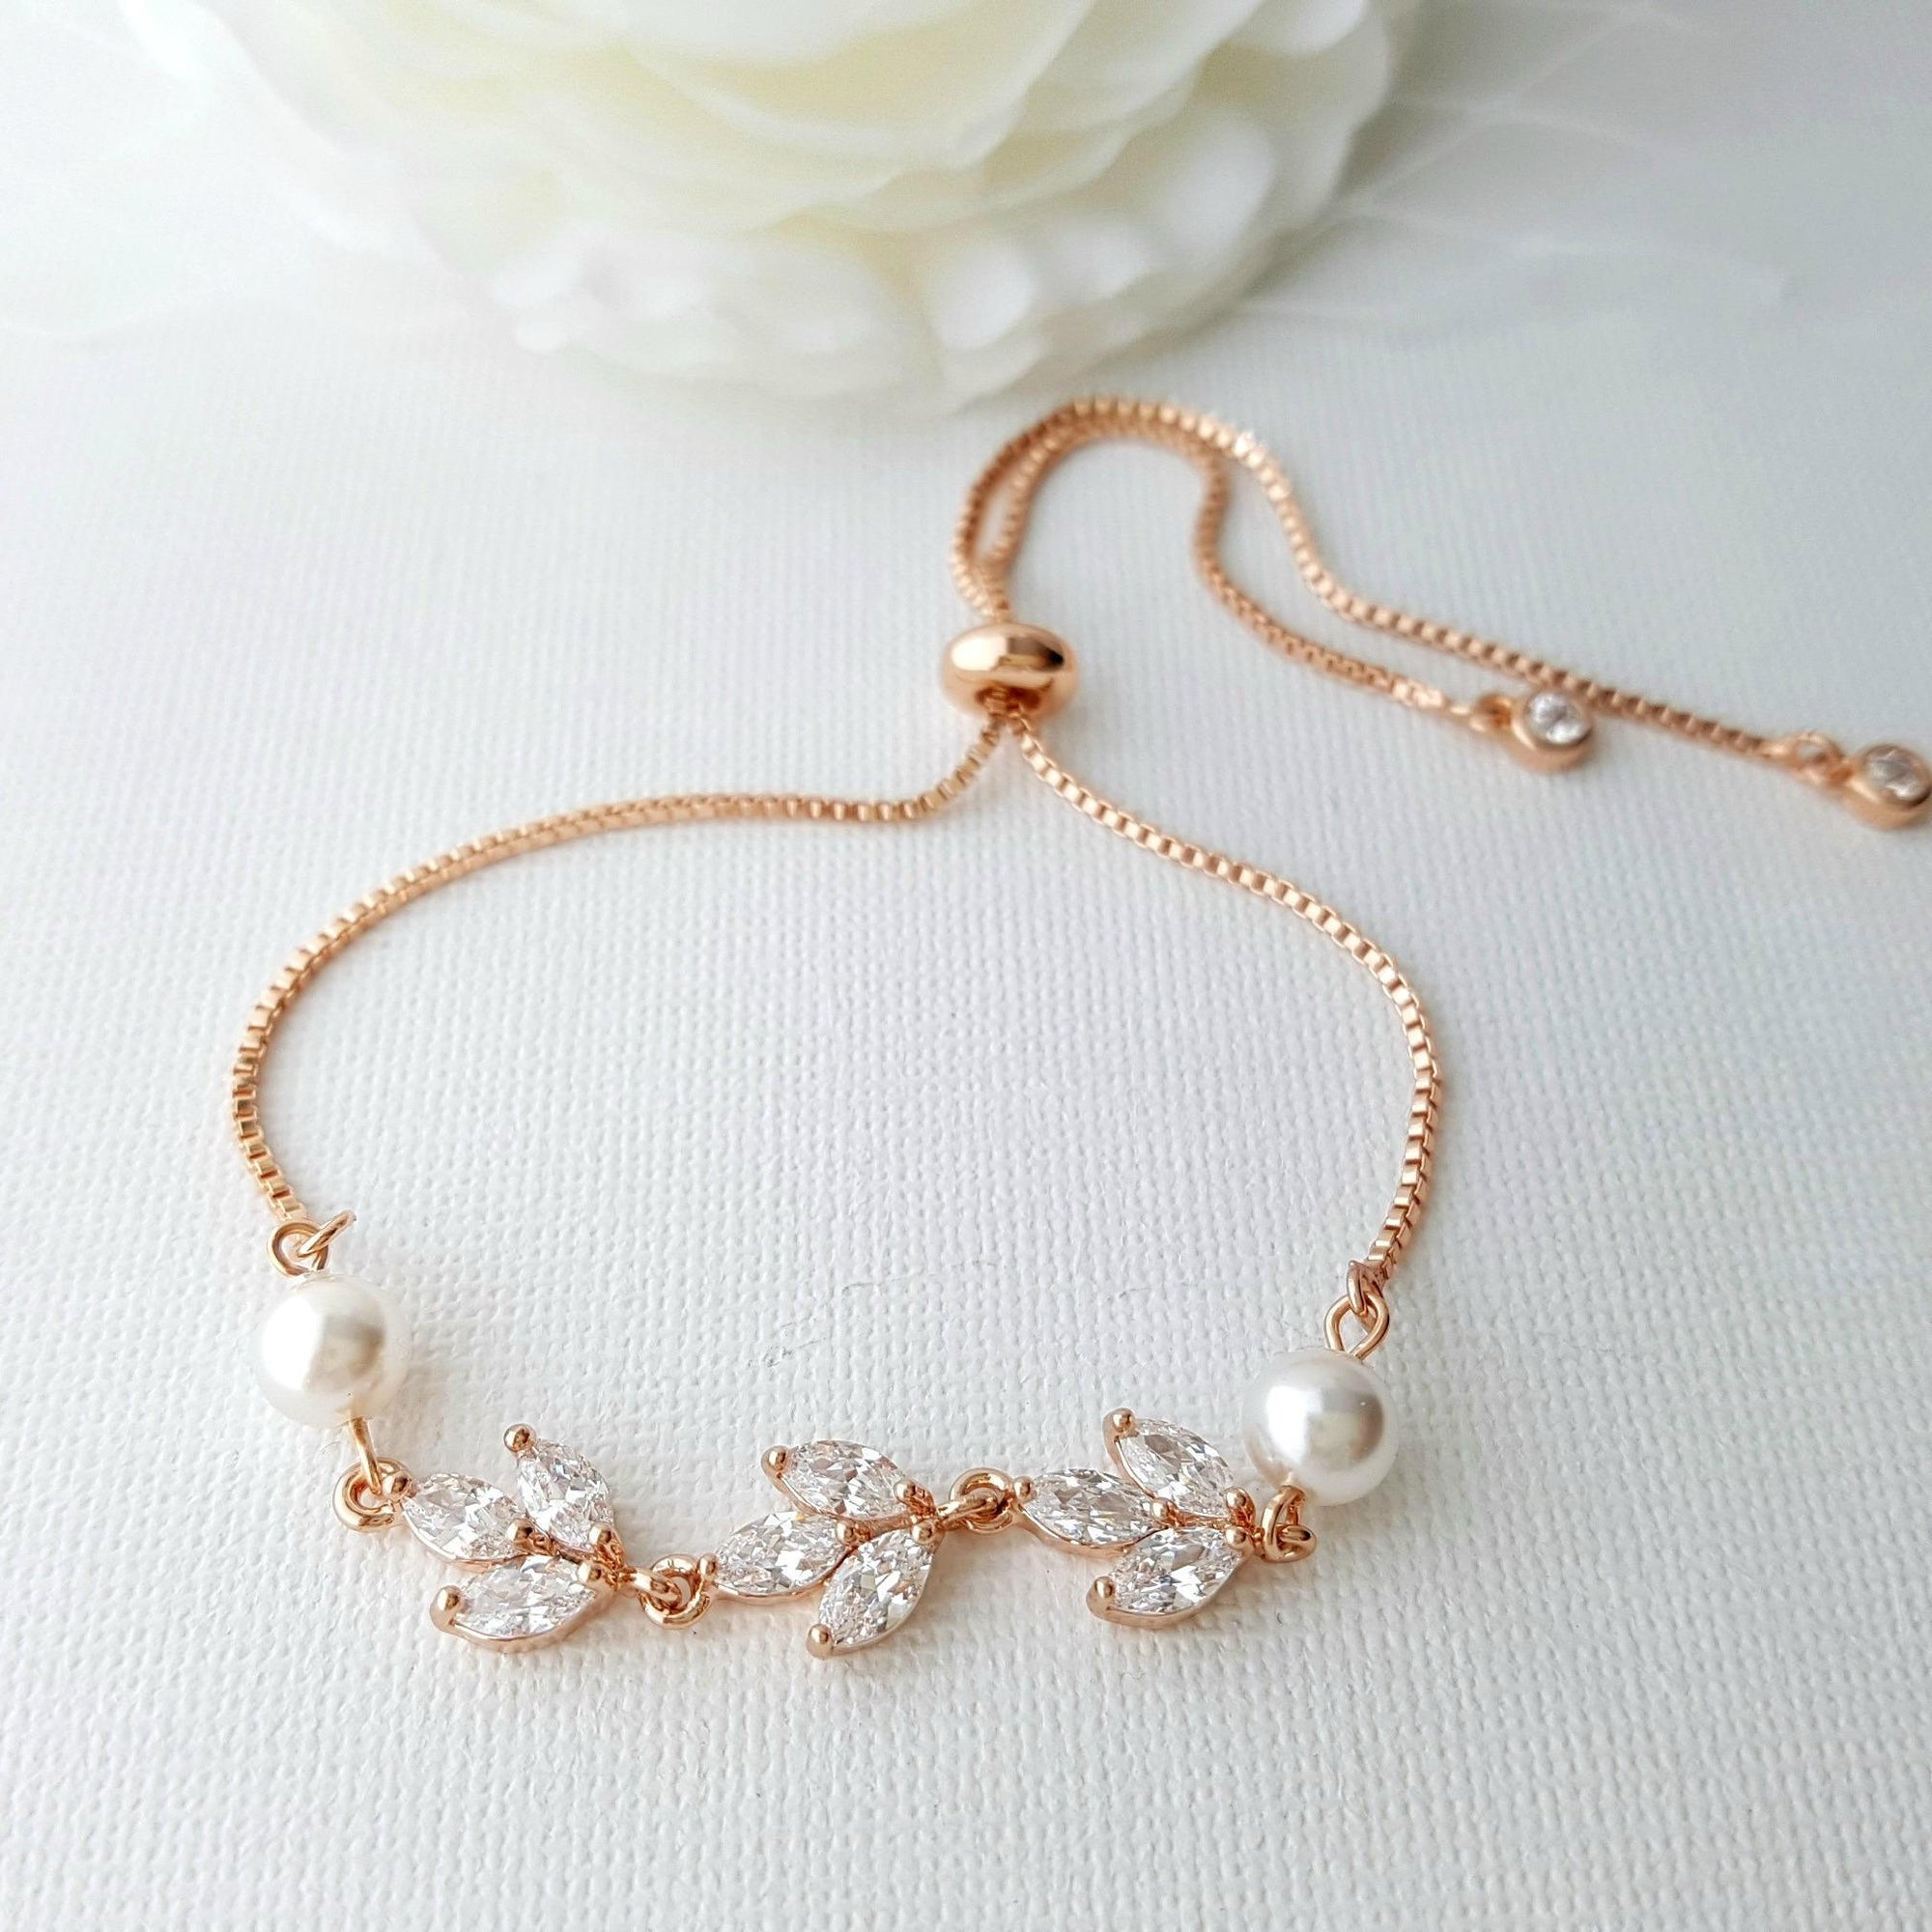 Bridal Bracelet in Rose Gold With CZ & Pearl-Leila - PoetryDesigns